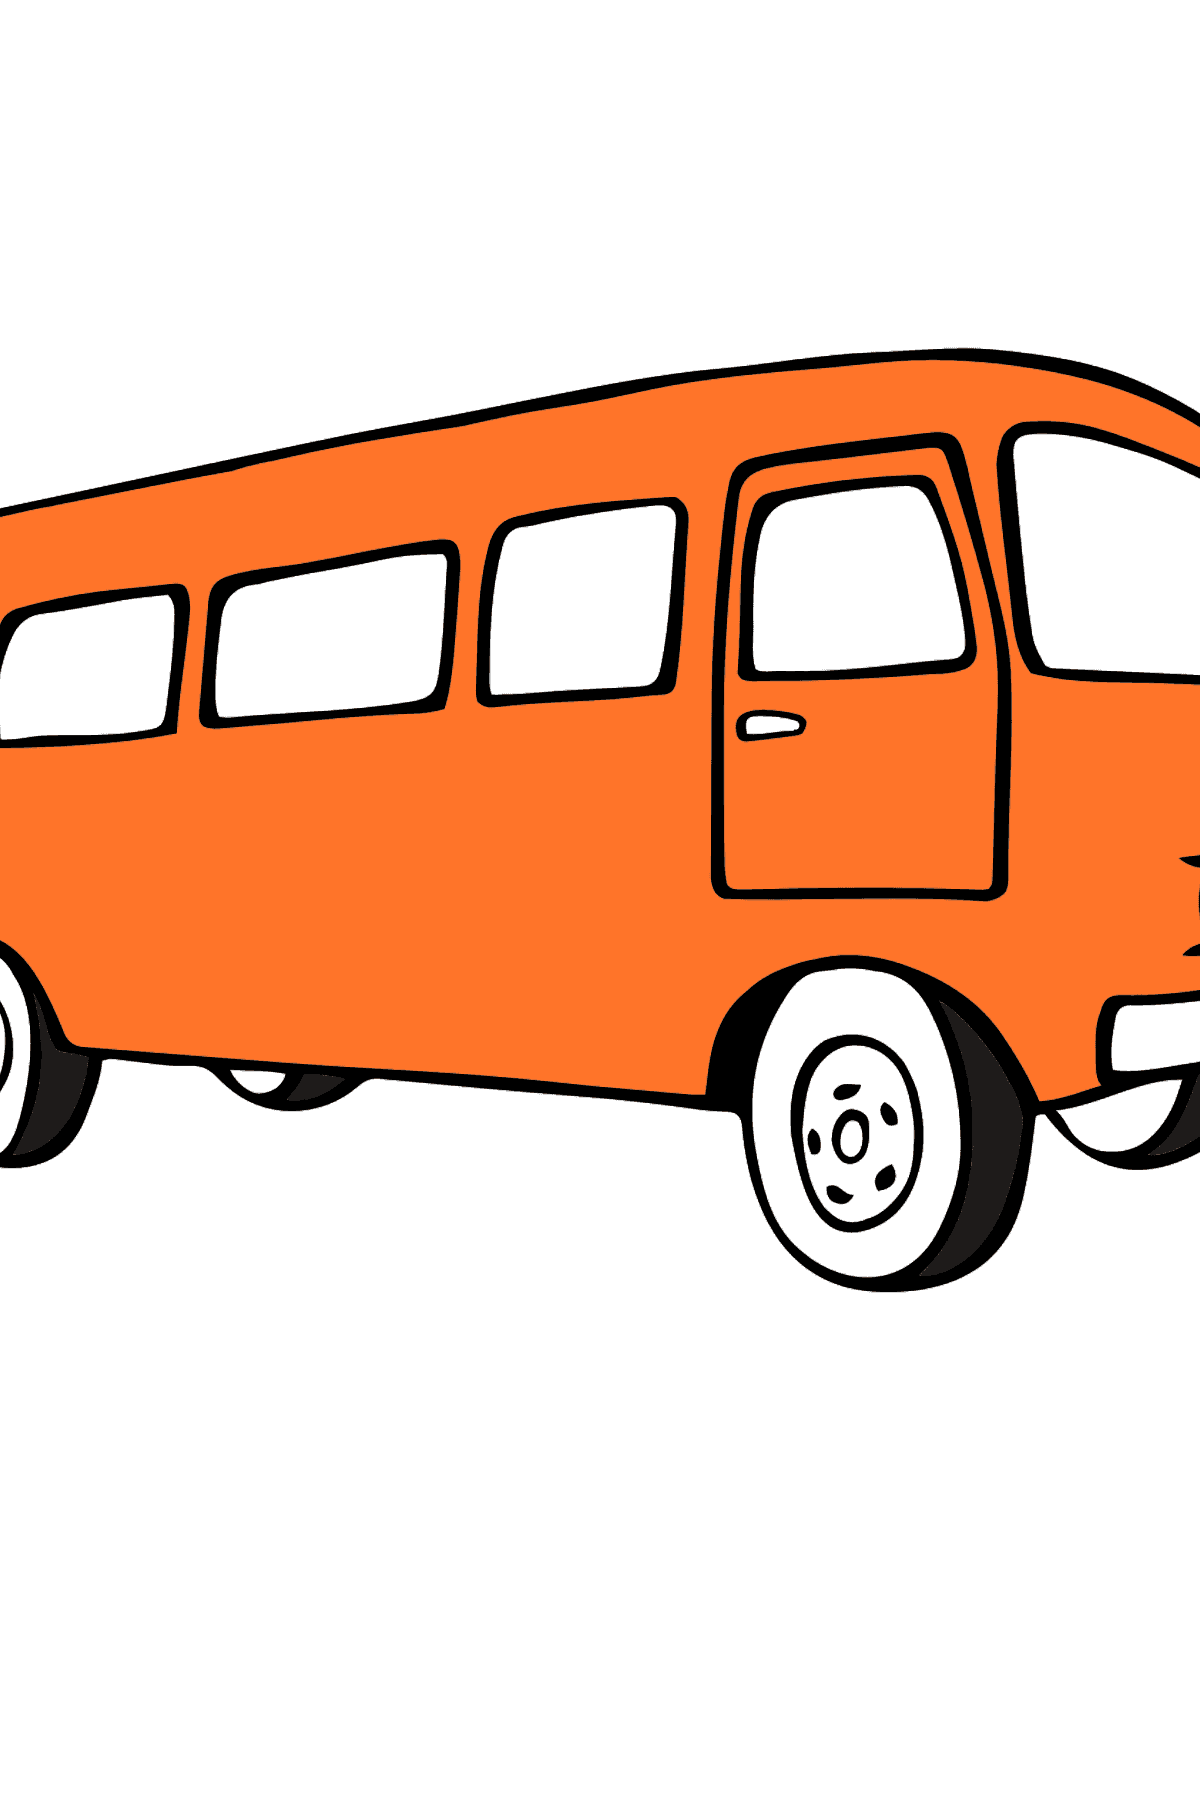 Coloring Page - A Traveling Bus - Coloring Pages for Kids